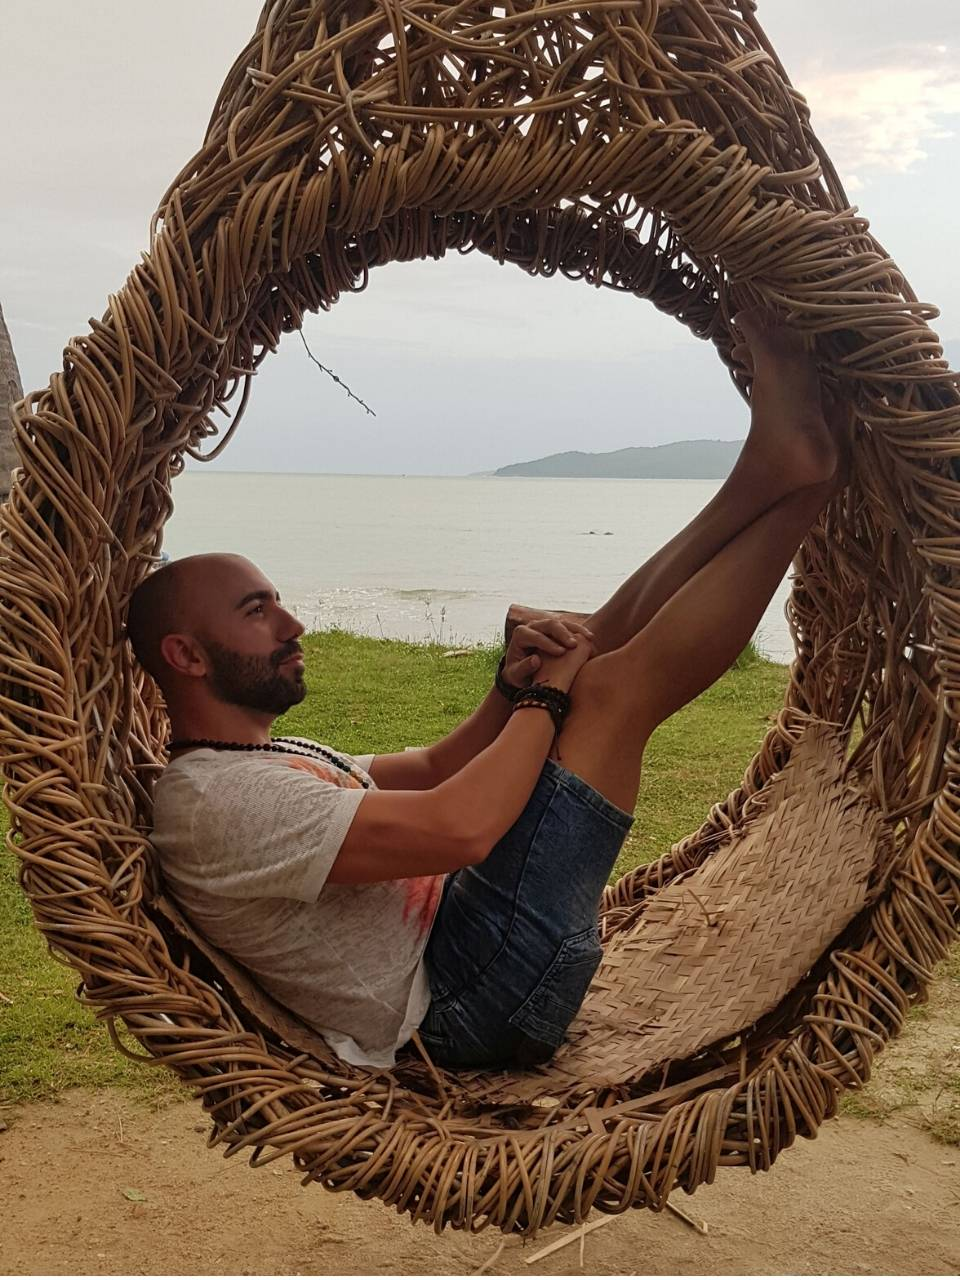 Mauro Federici sitting on a seesaw in the shape of a nest on Koh Samui beach